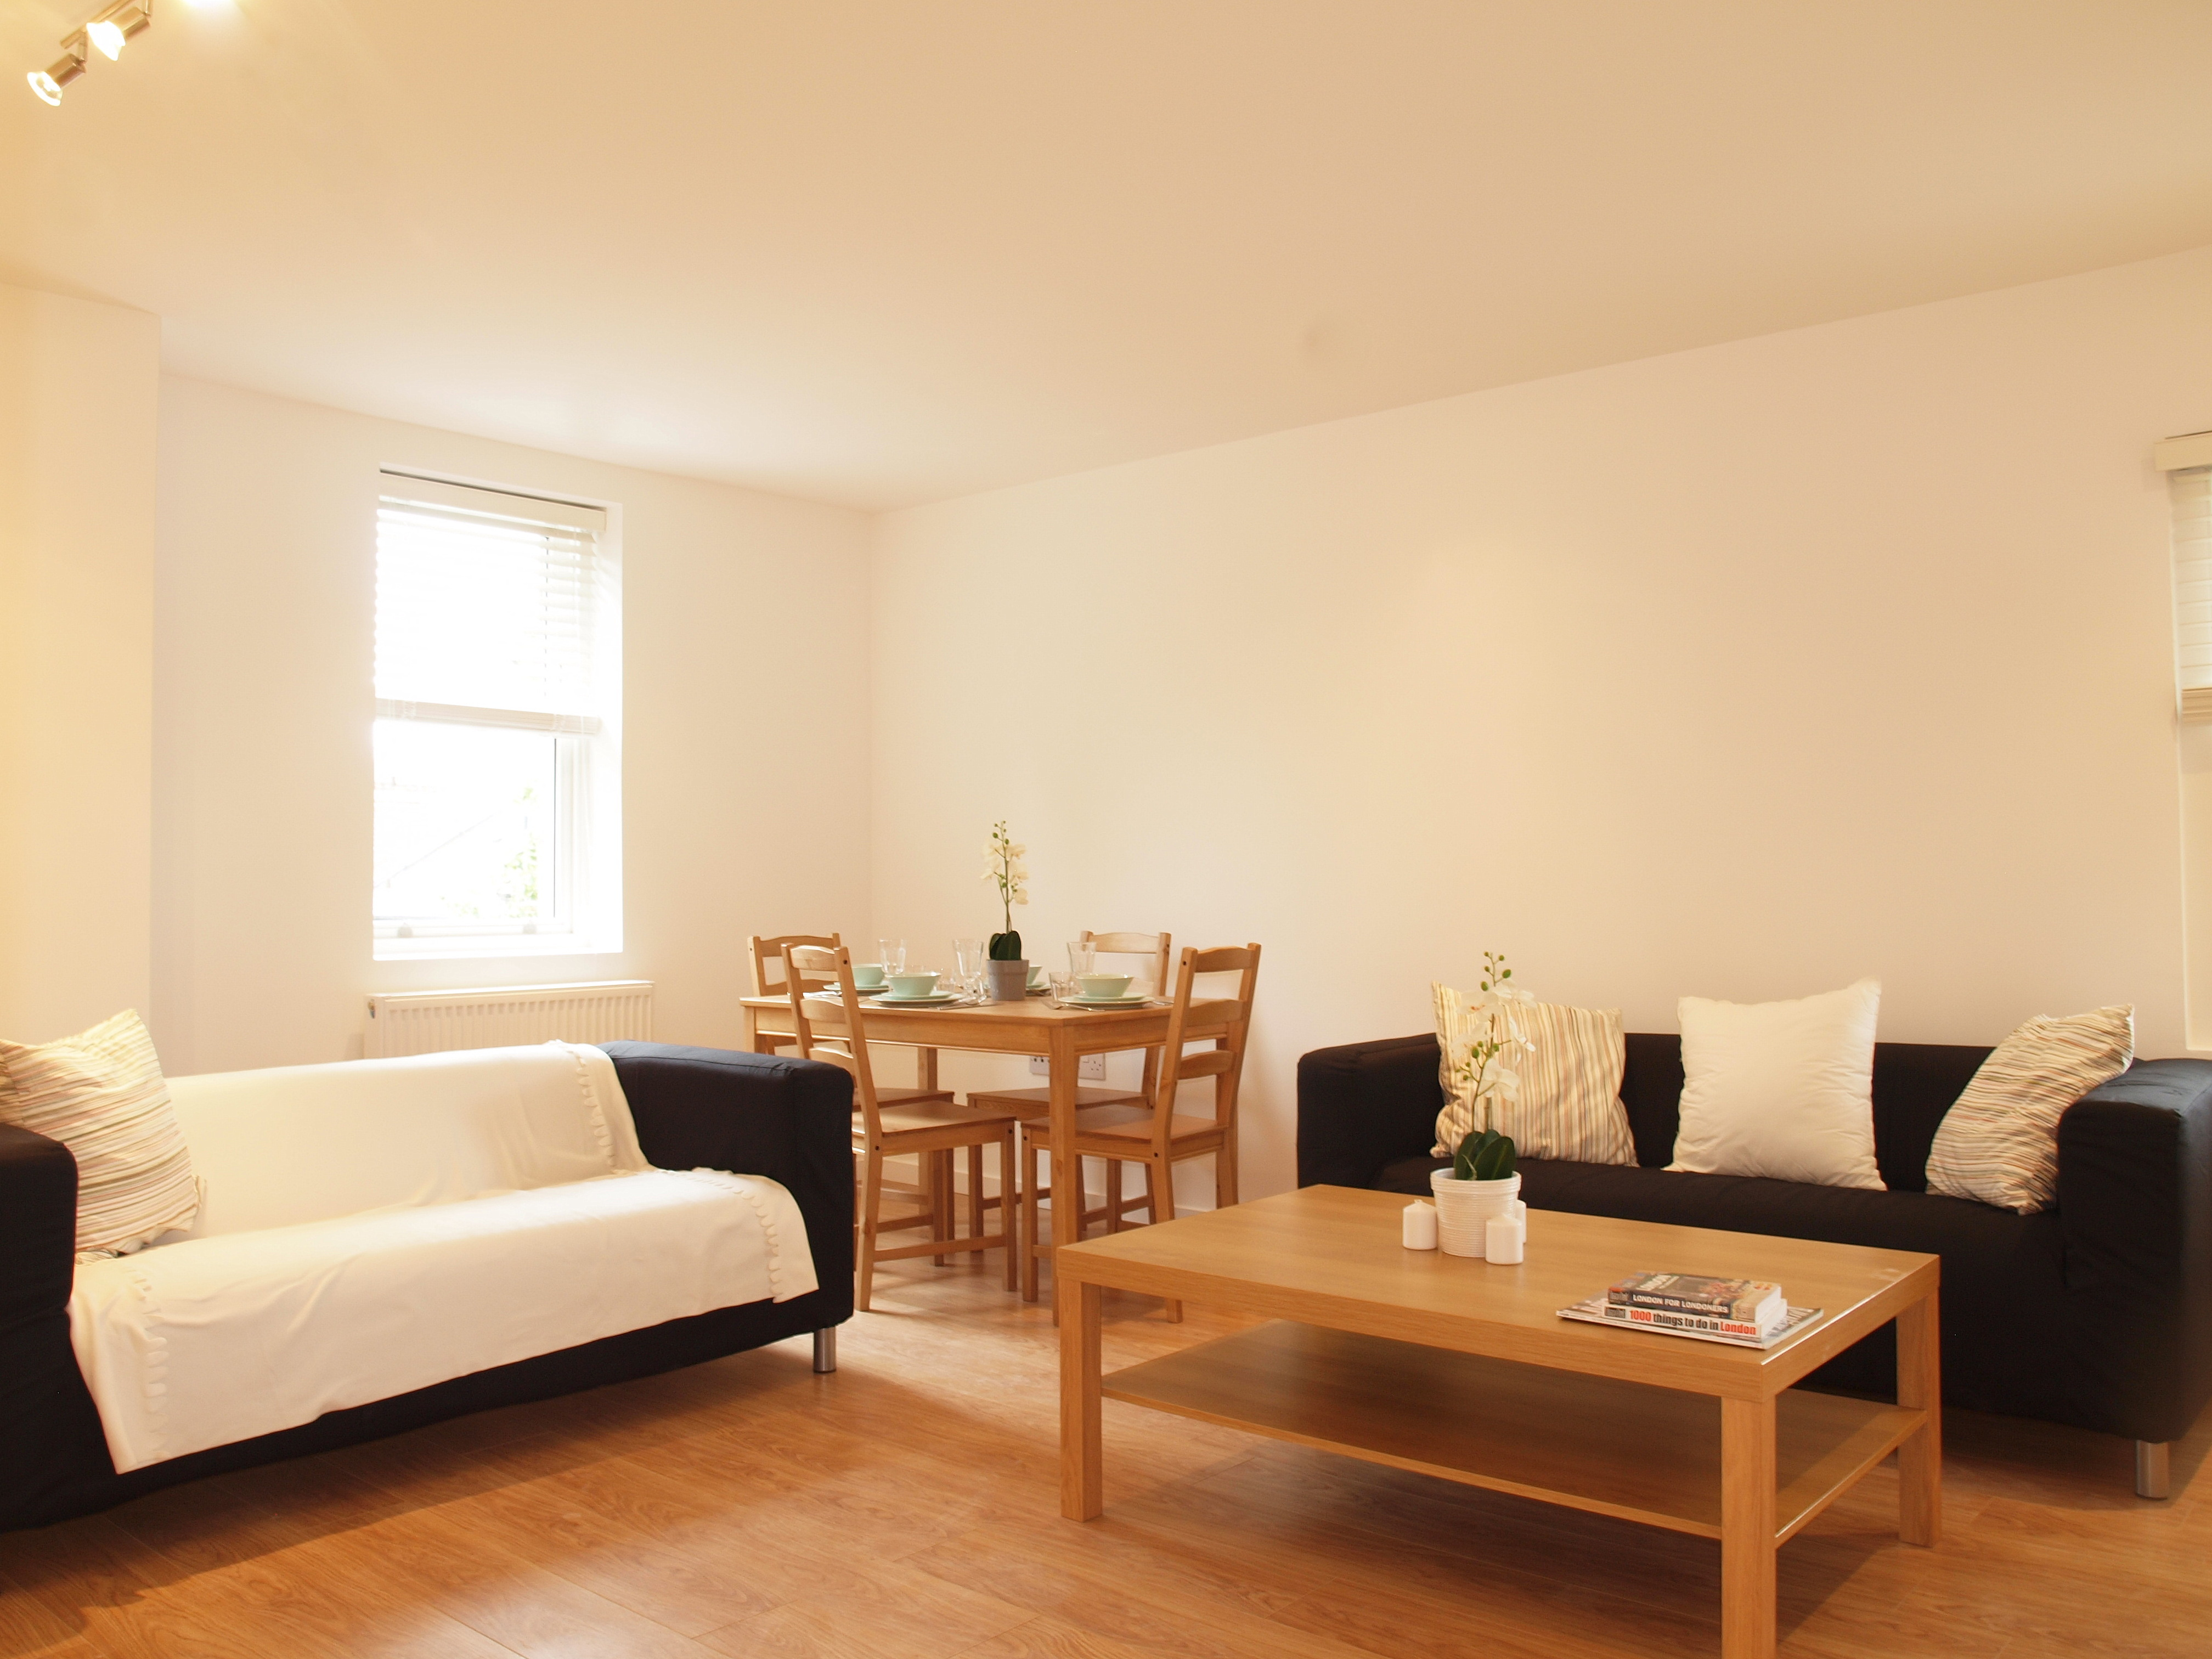 3 Bedroom Flat To Rent In Rushcroft Road SW2 London